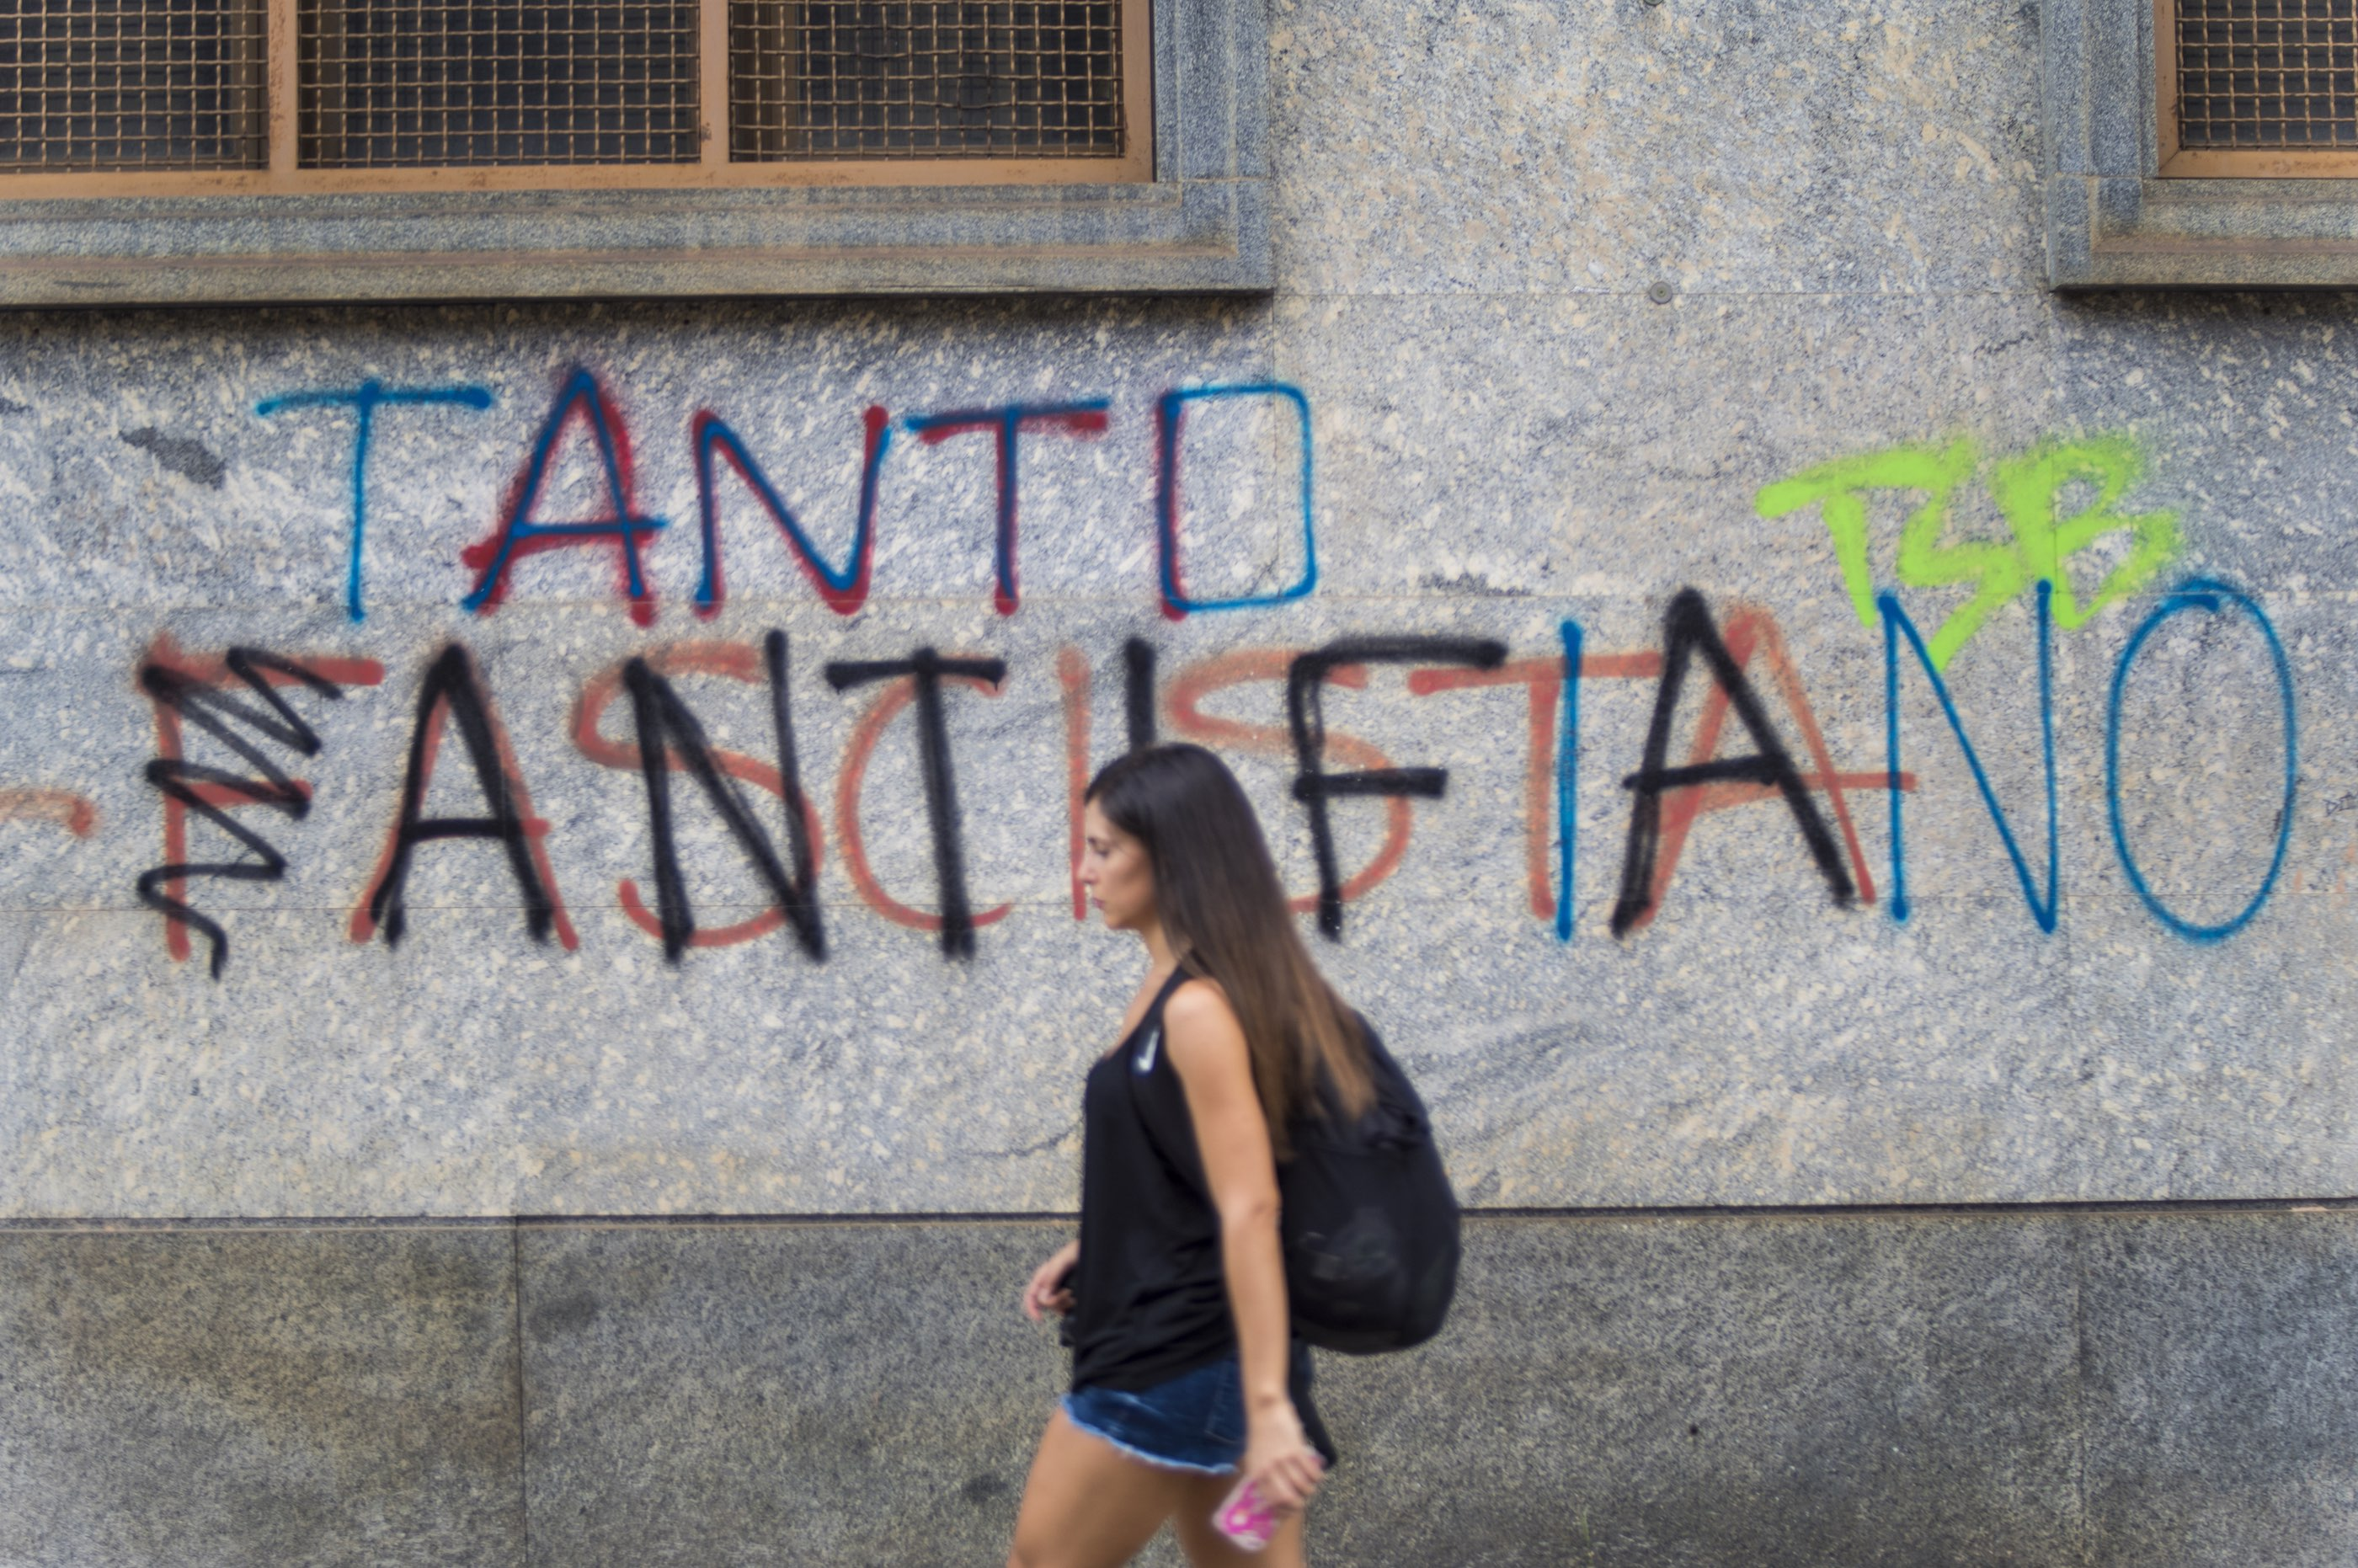 So much fascism and anti-fascism. Turin, August 2019.